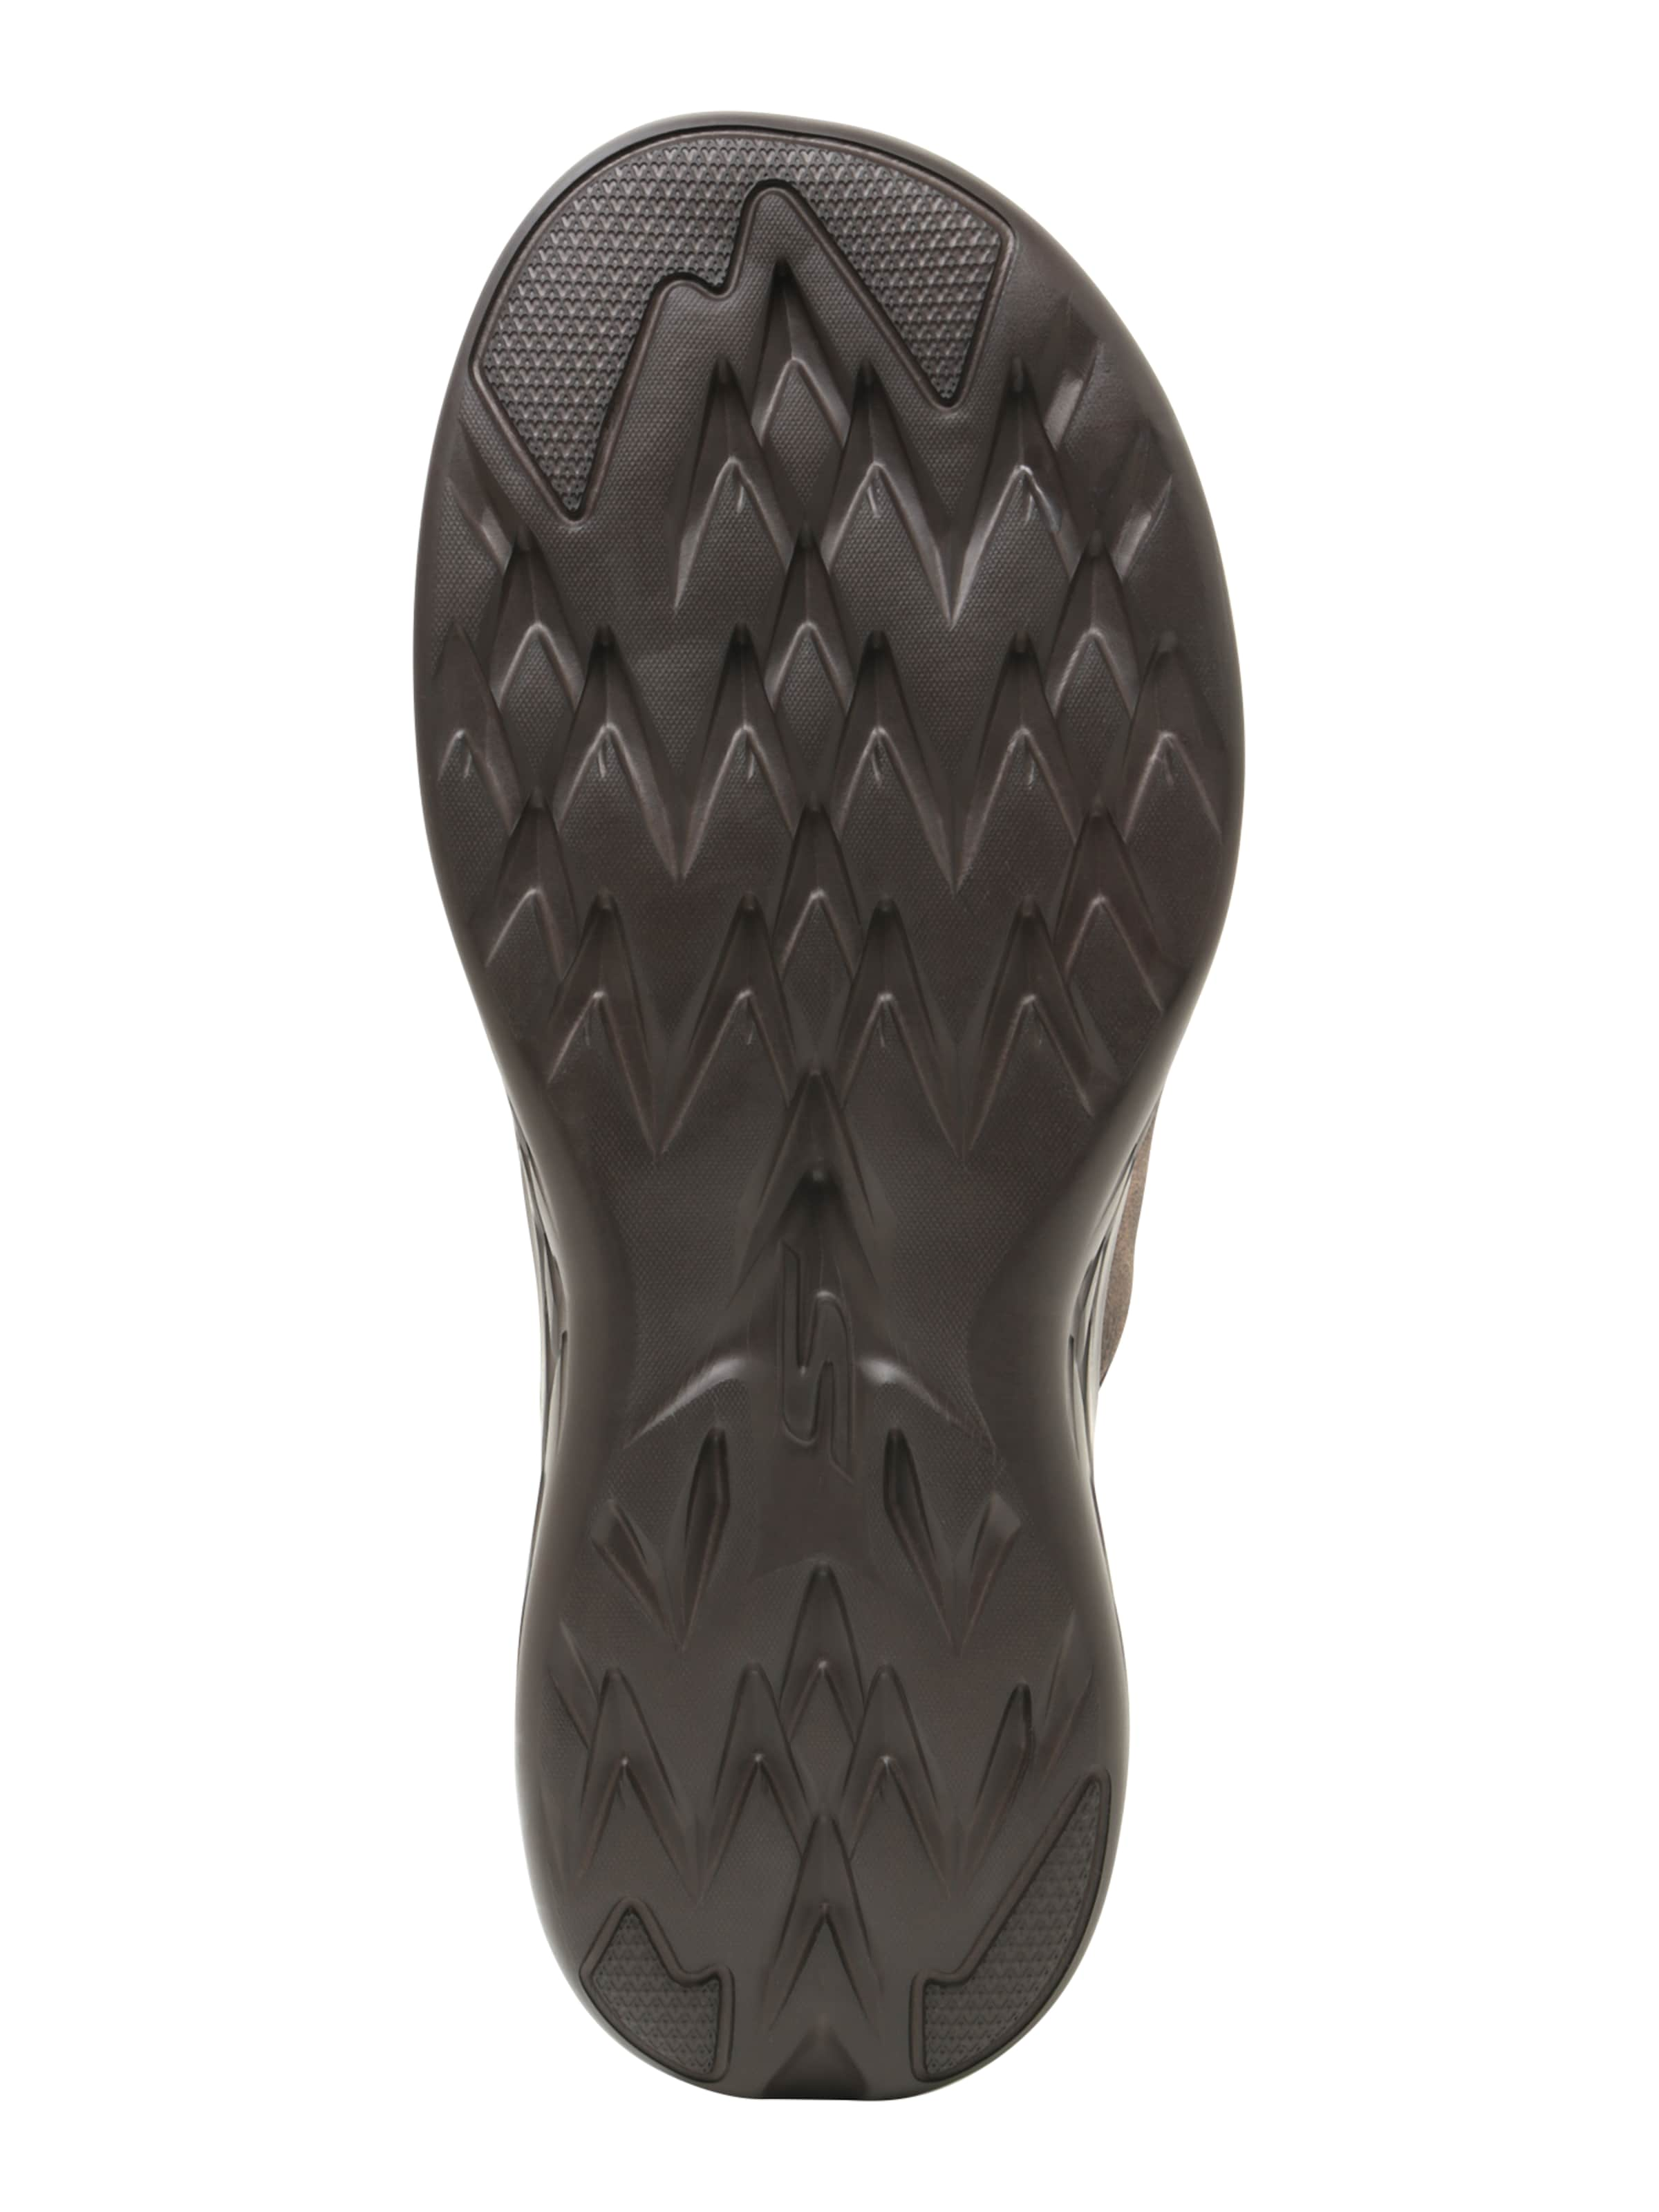 Footbed' Braun In Skechers Sandal Molded '3 Perform Point Zehentreter Tex ZukiwPXOT